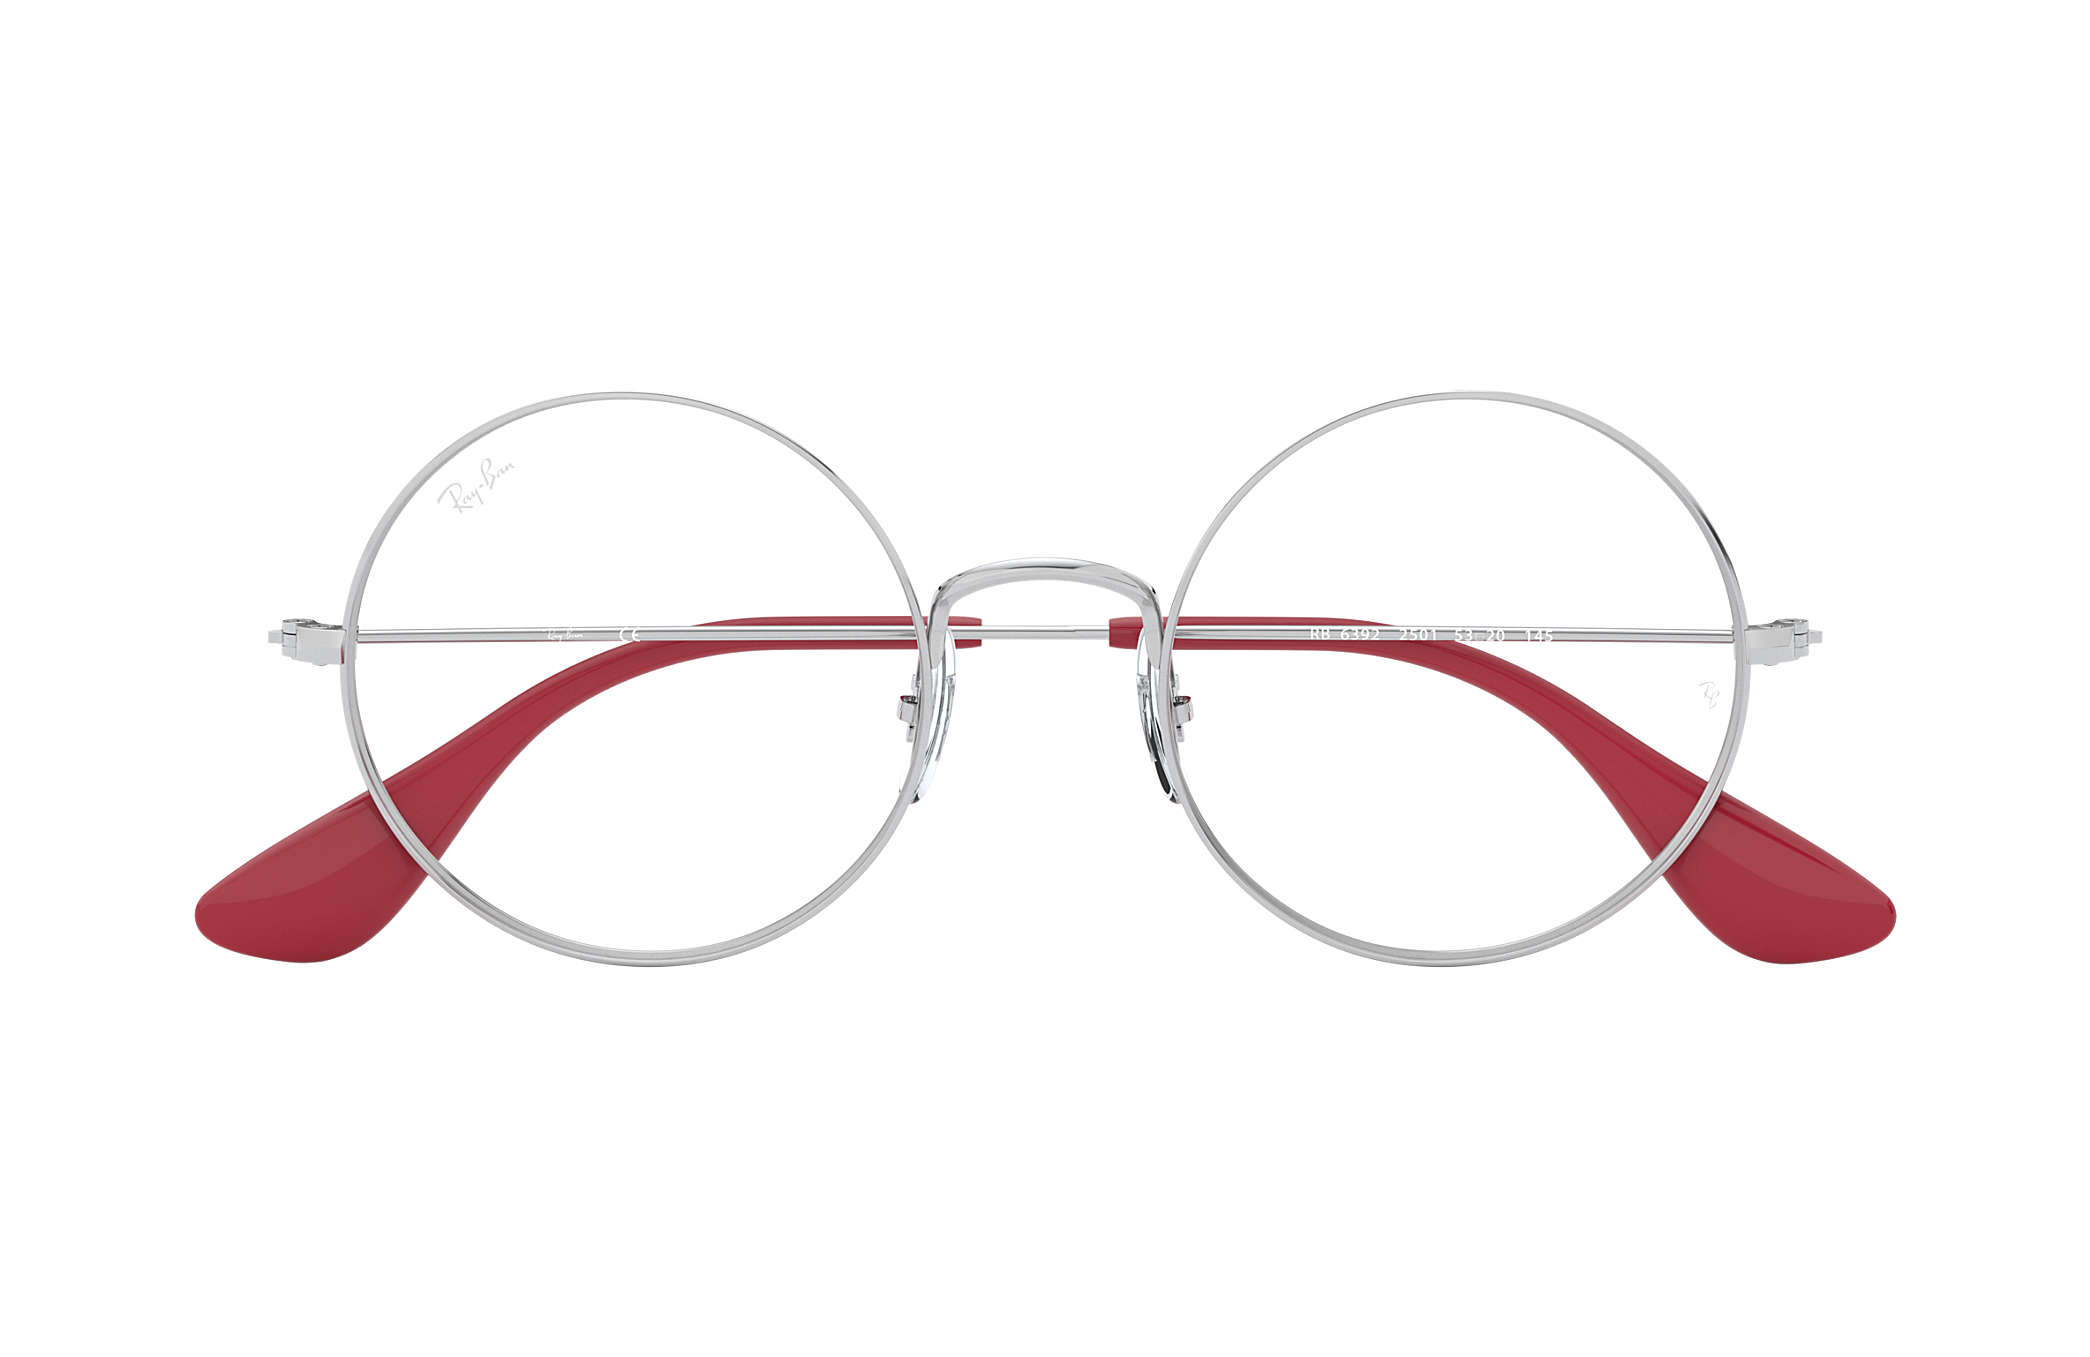 f702be863c0 Ray-Ban prescription glasses Ja-jo Optics RB6392 Silver - Metal ...